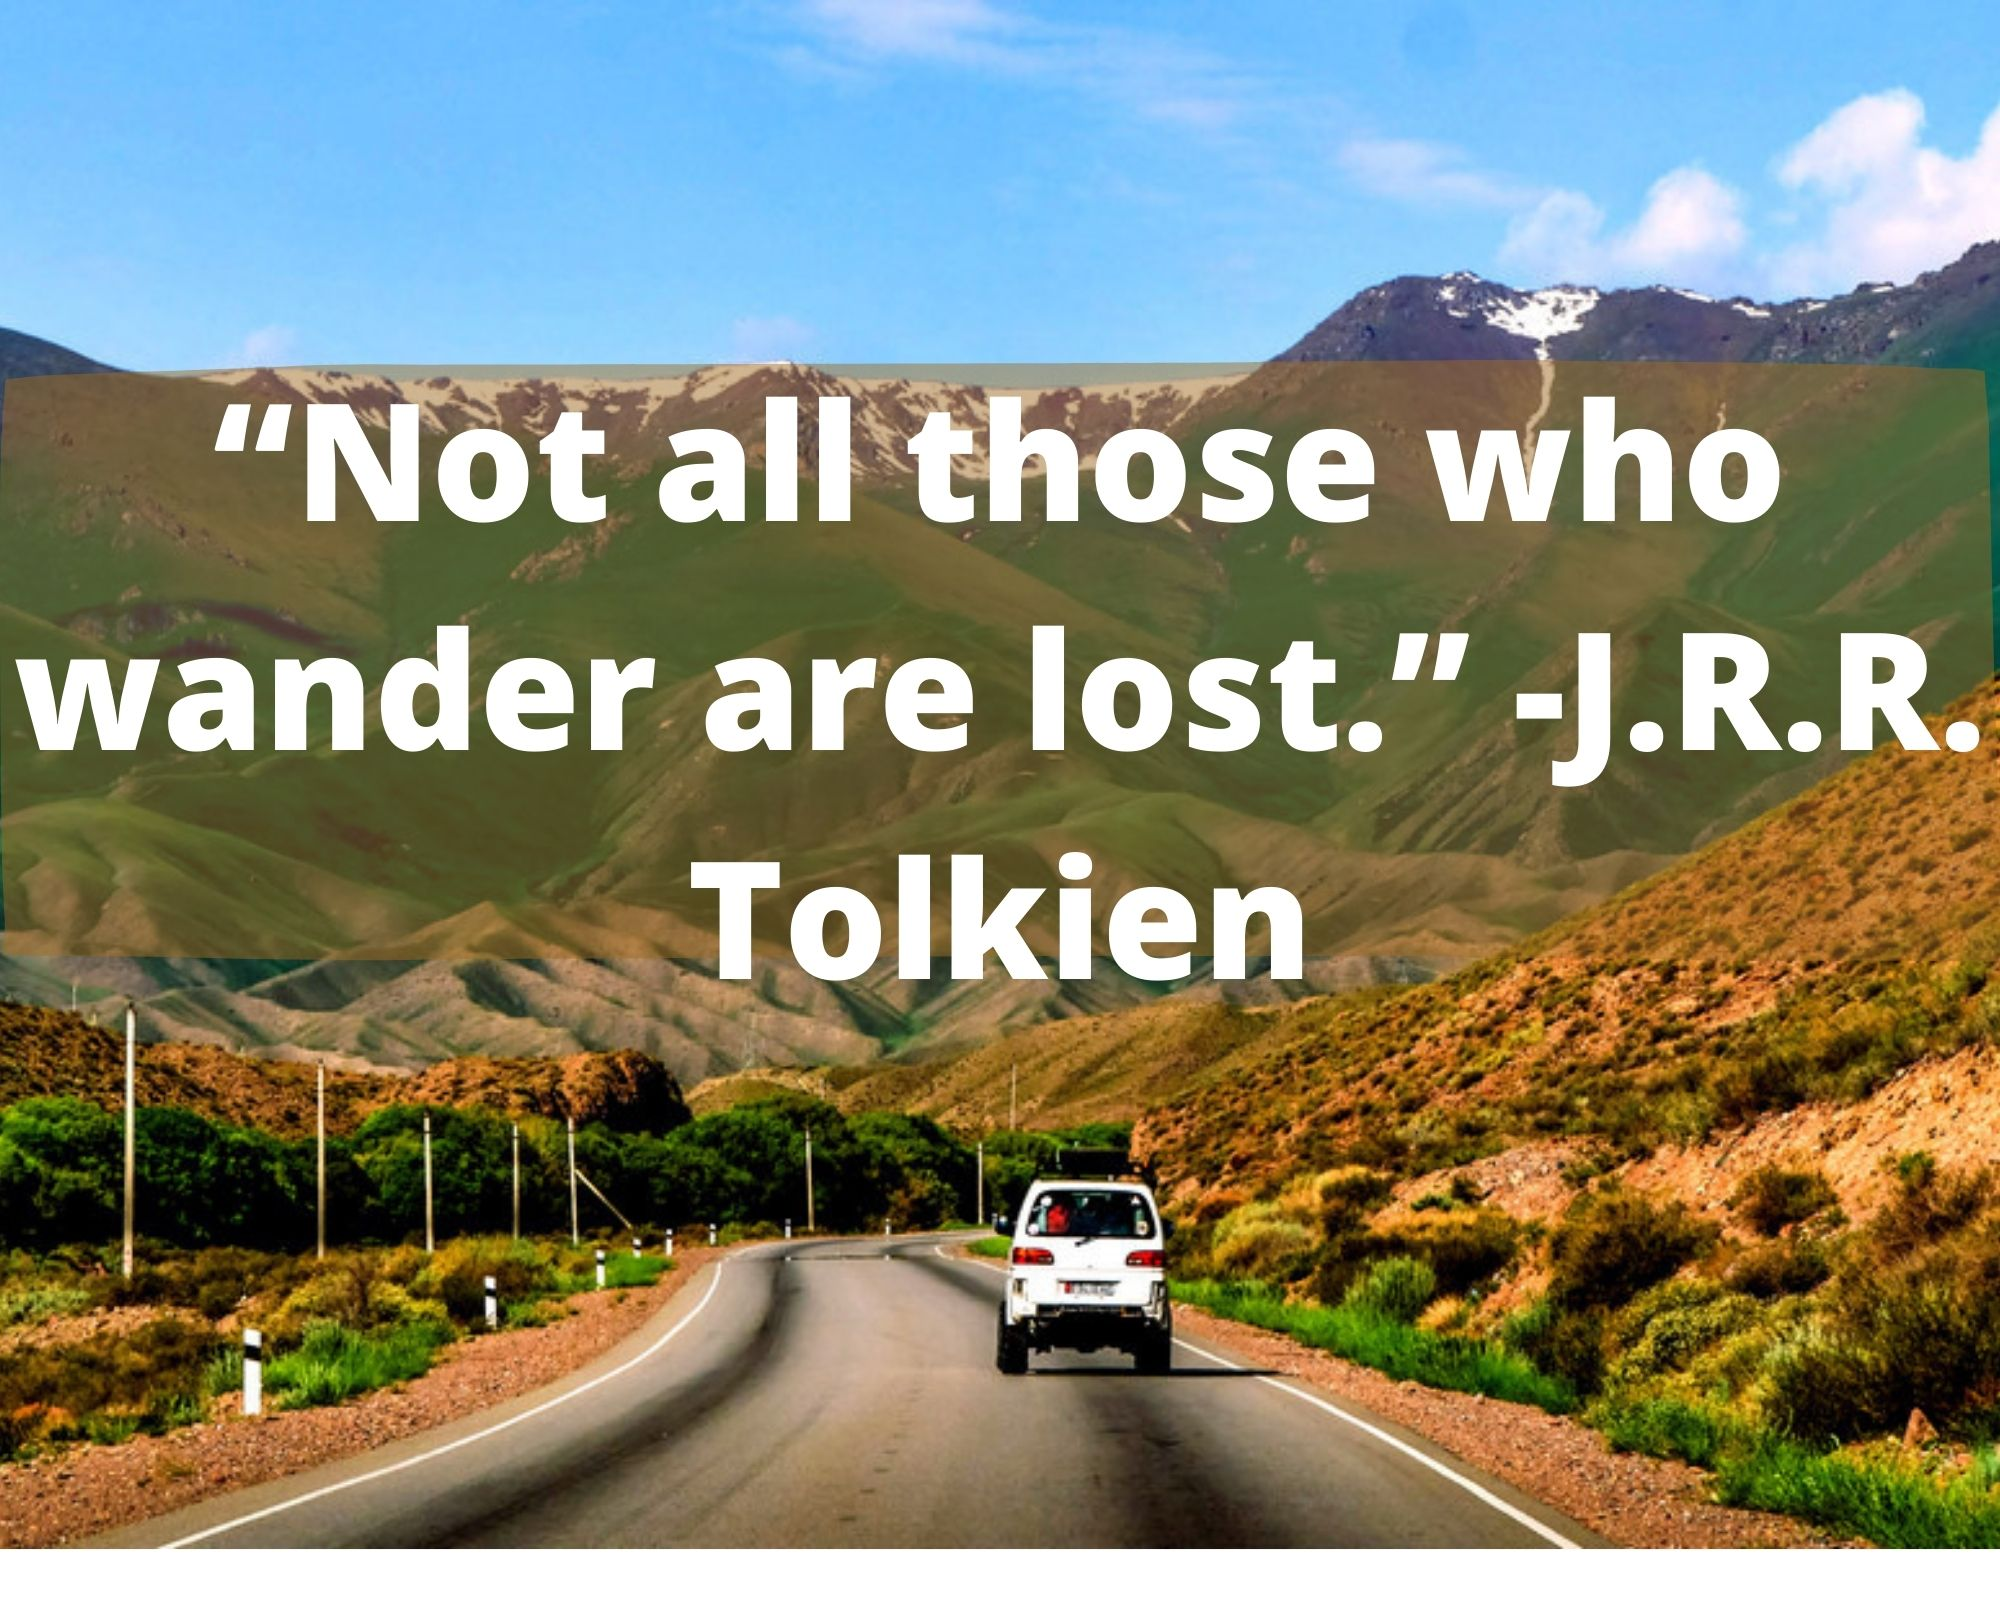 """Not all those who wander are lost."" -J.R.R. Tolkien"